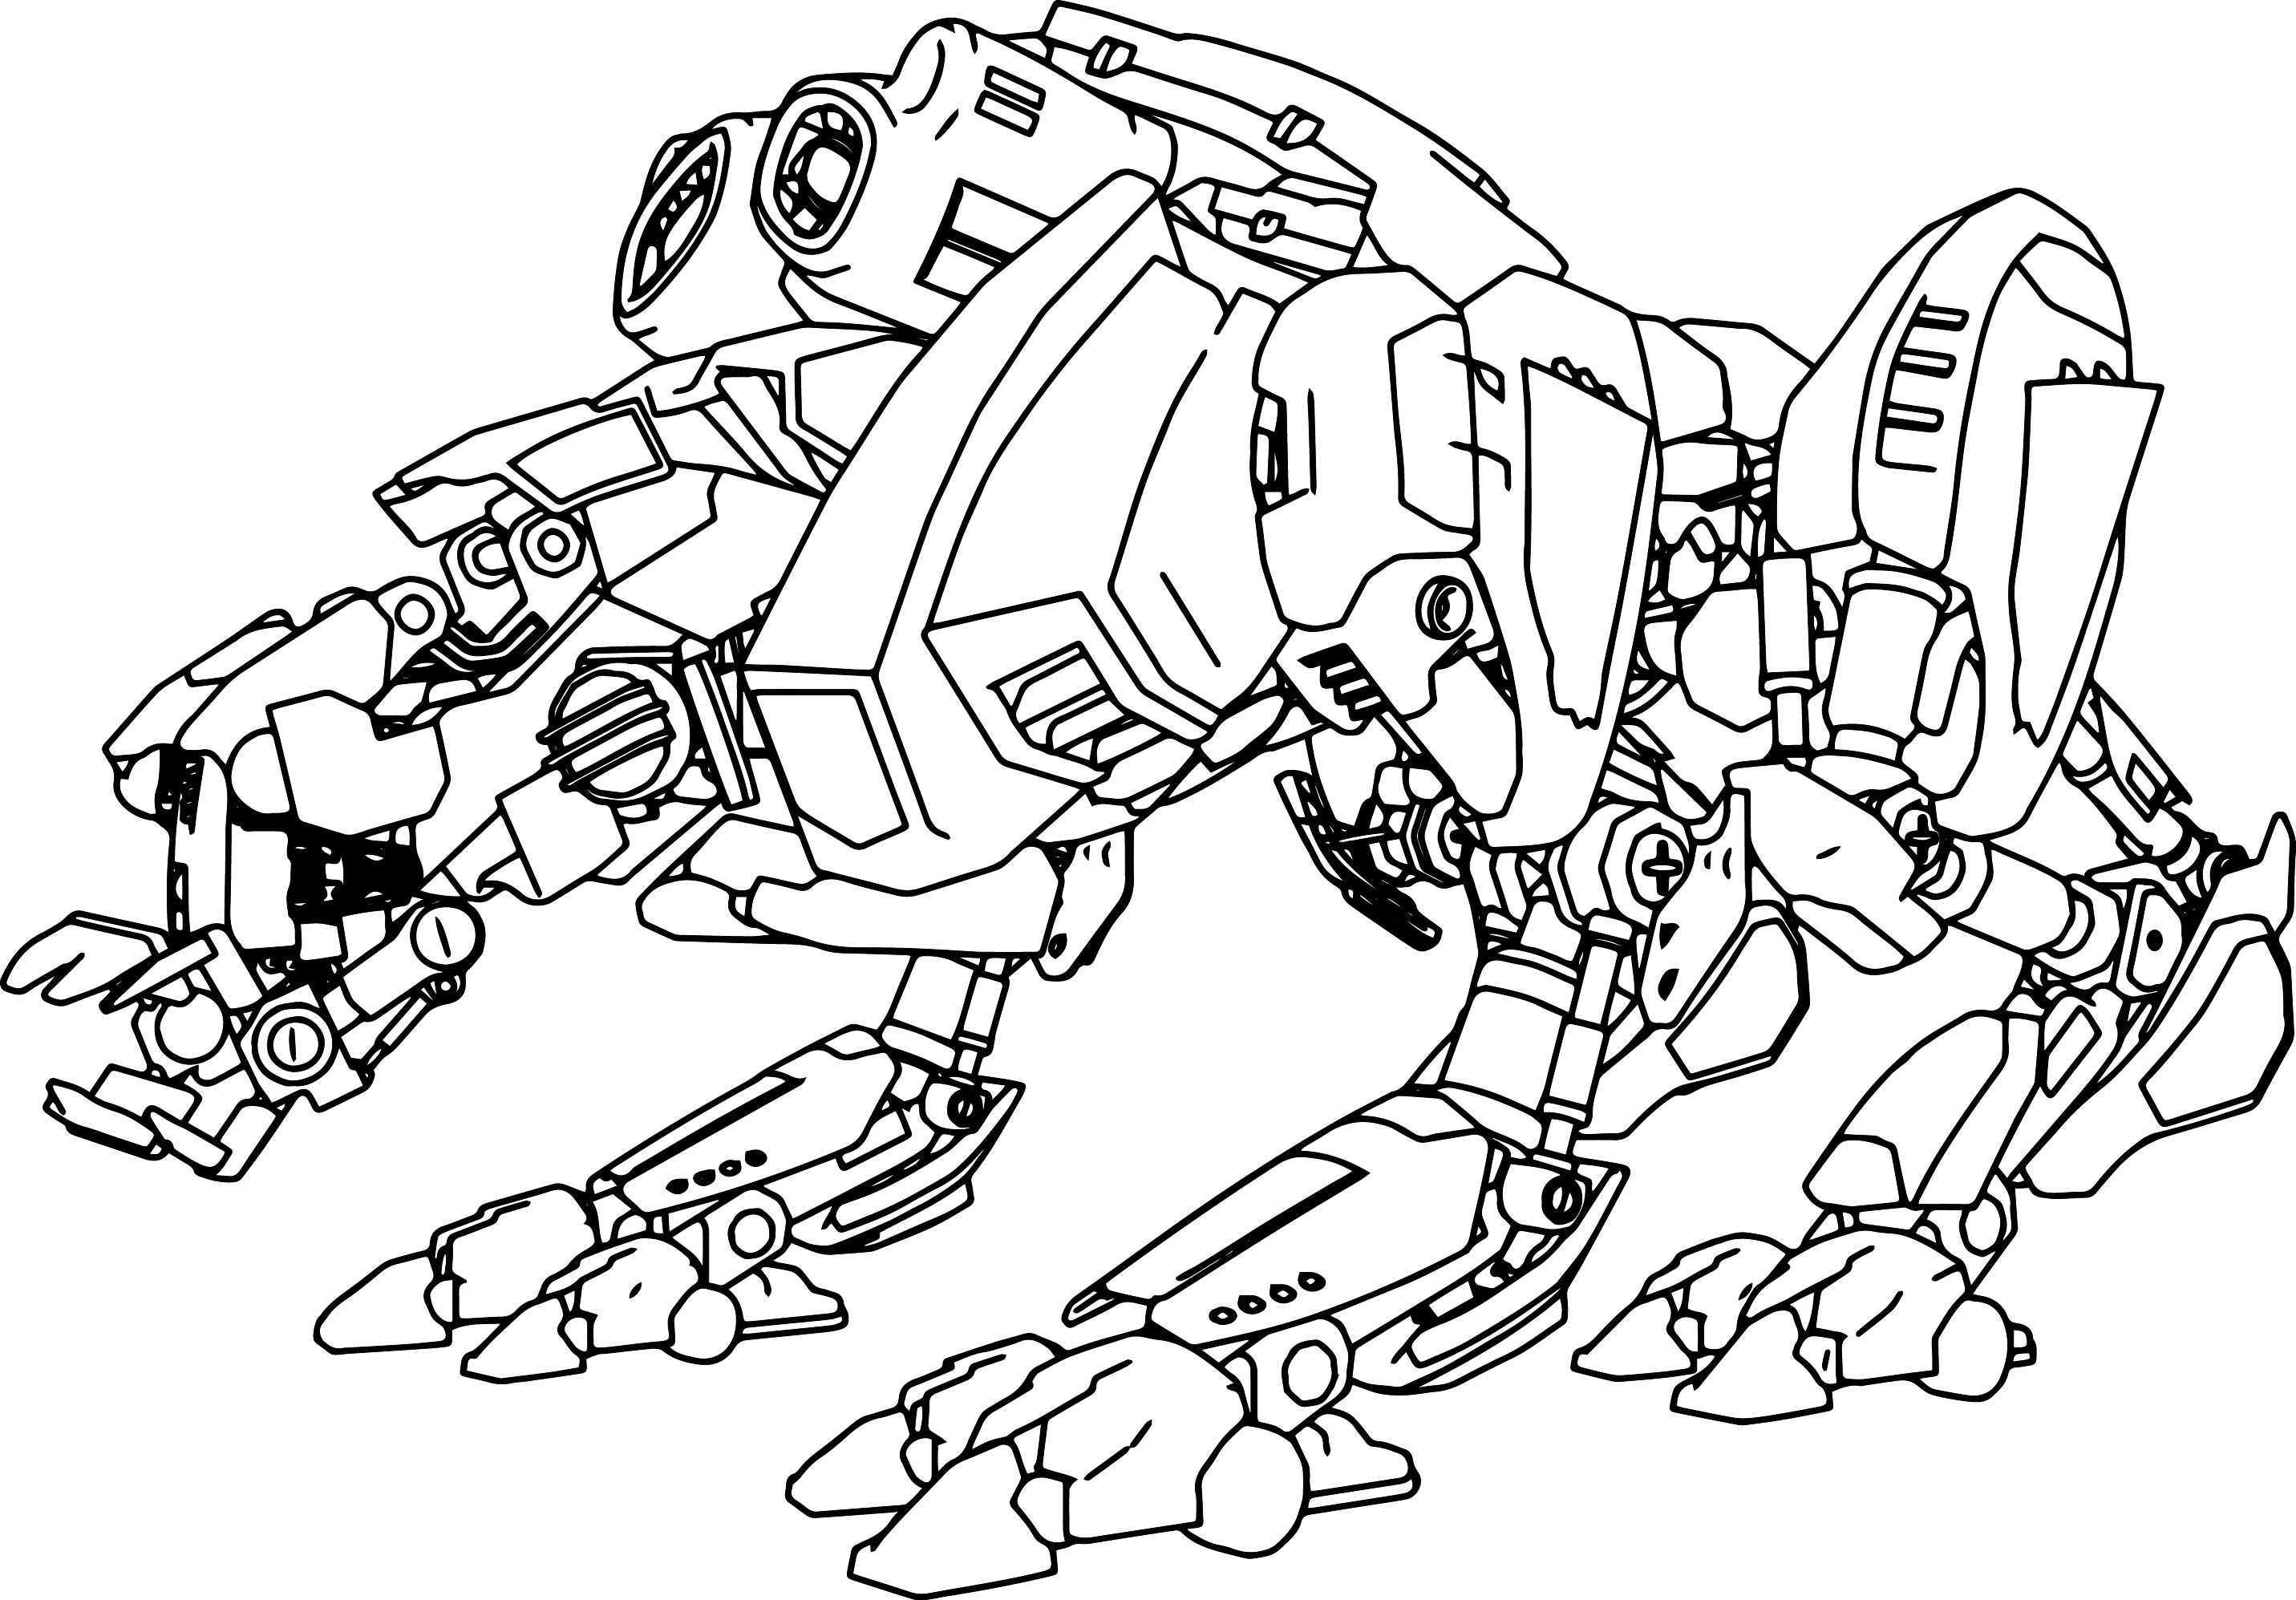 Real Steel Coloring Pages at GetDrawings.com   Free for ...